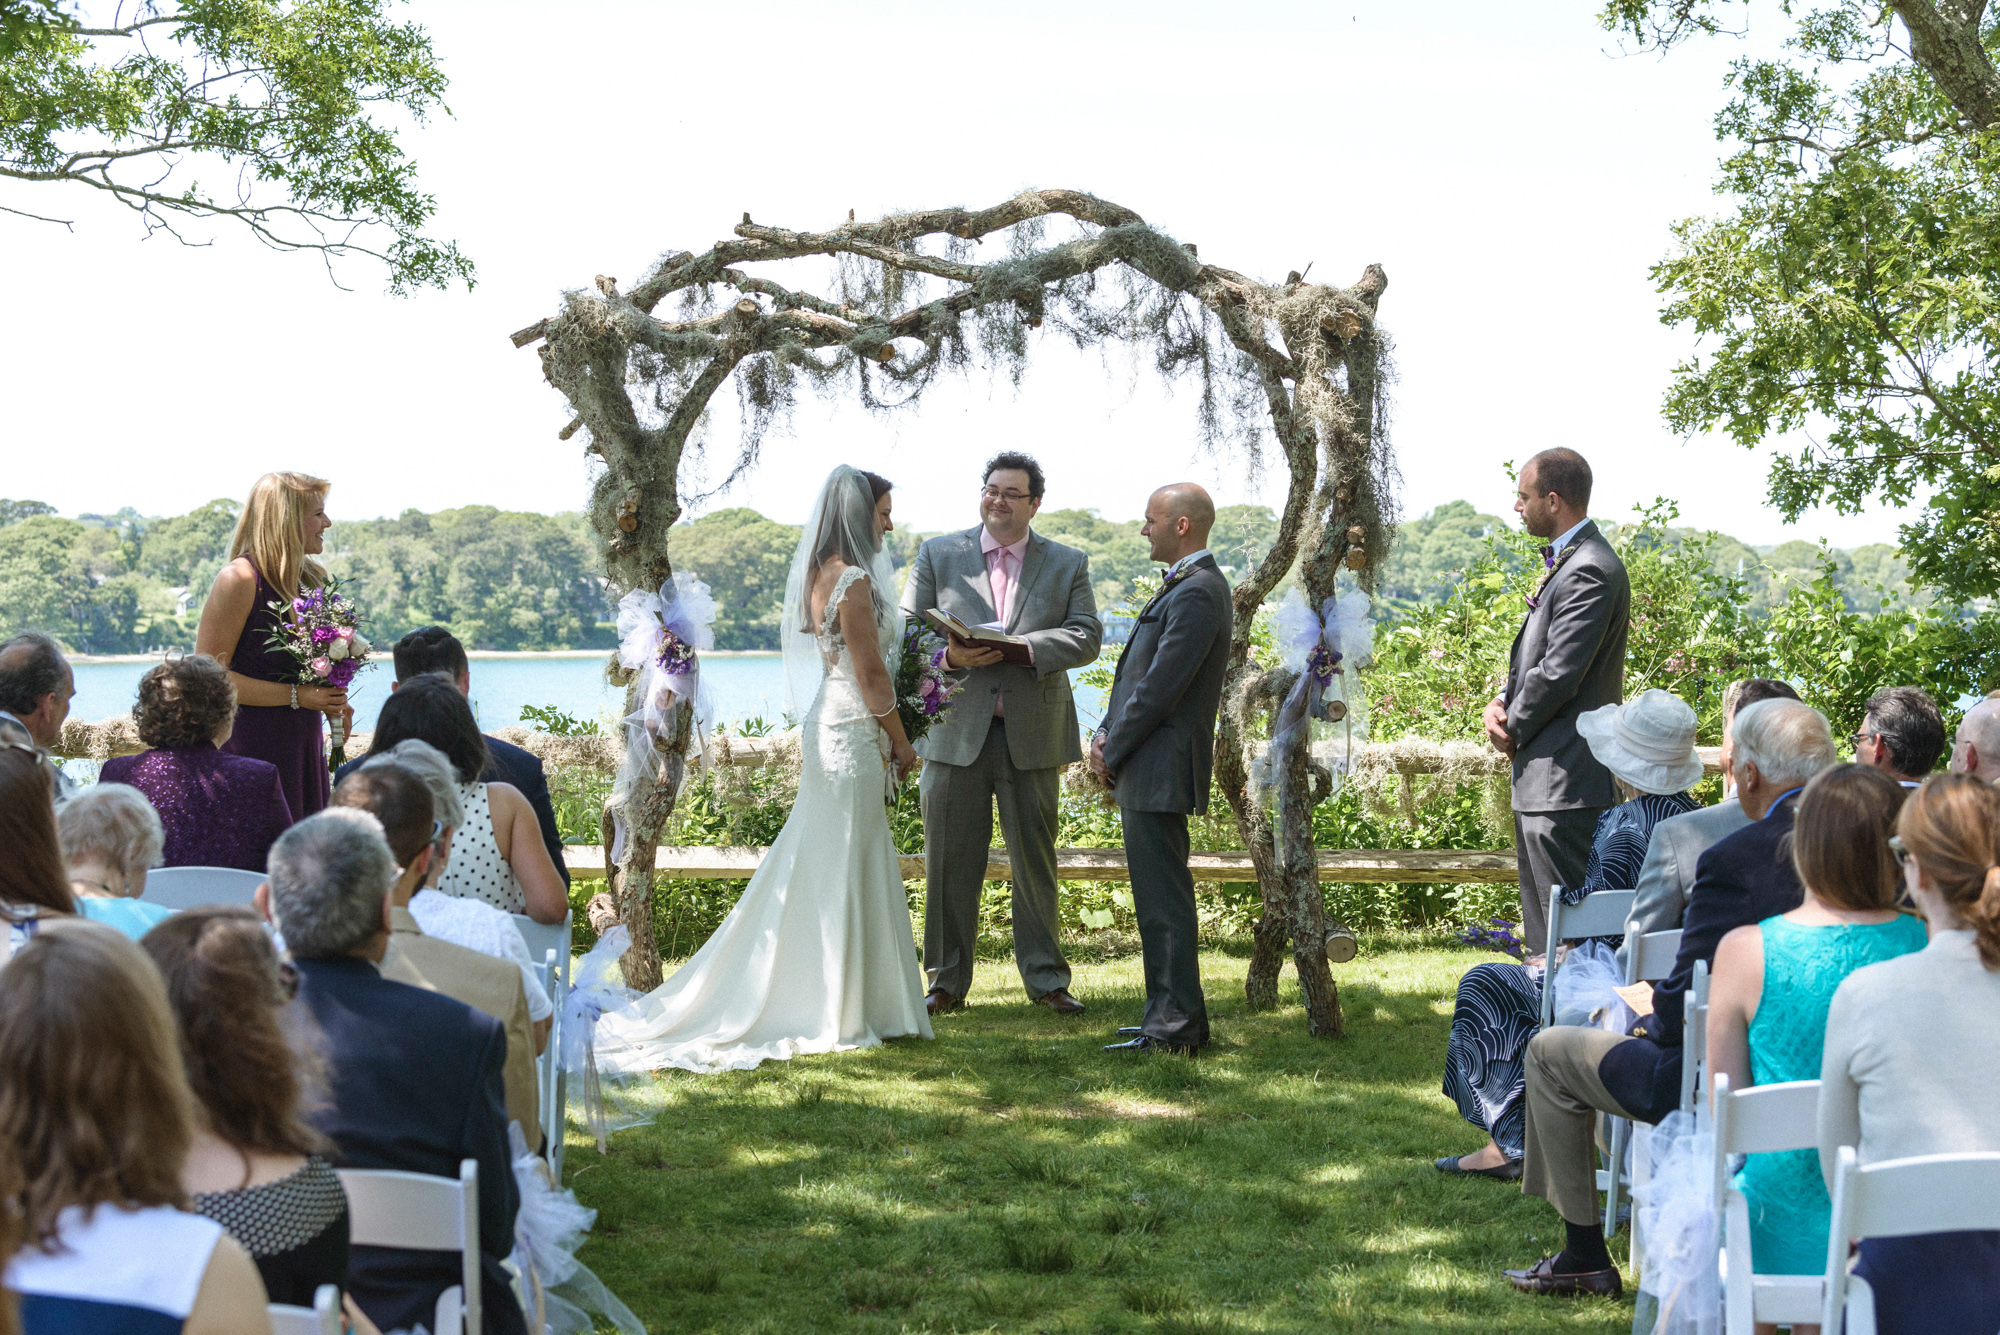 Scott and Melisa wedding ceremony at the Sailing Camp Park in Oak Bluffs photo by David Welch Photography